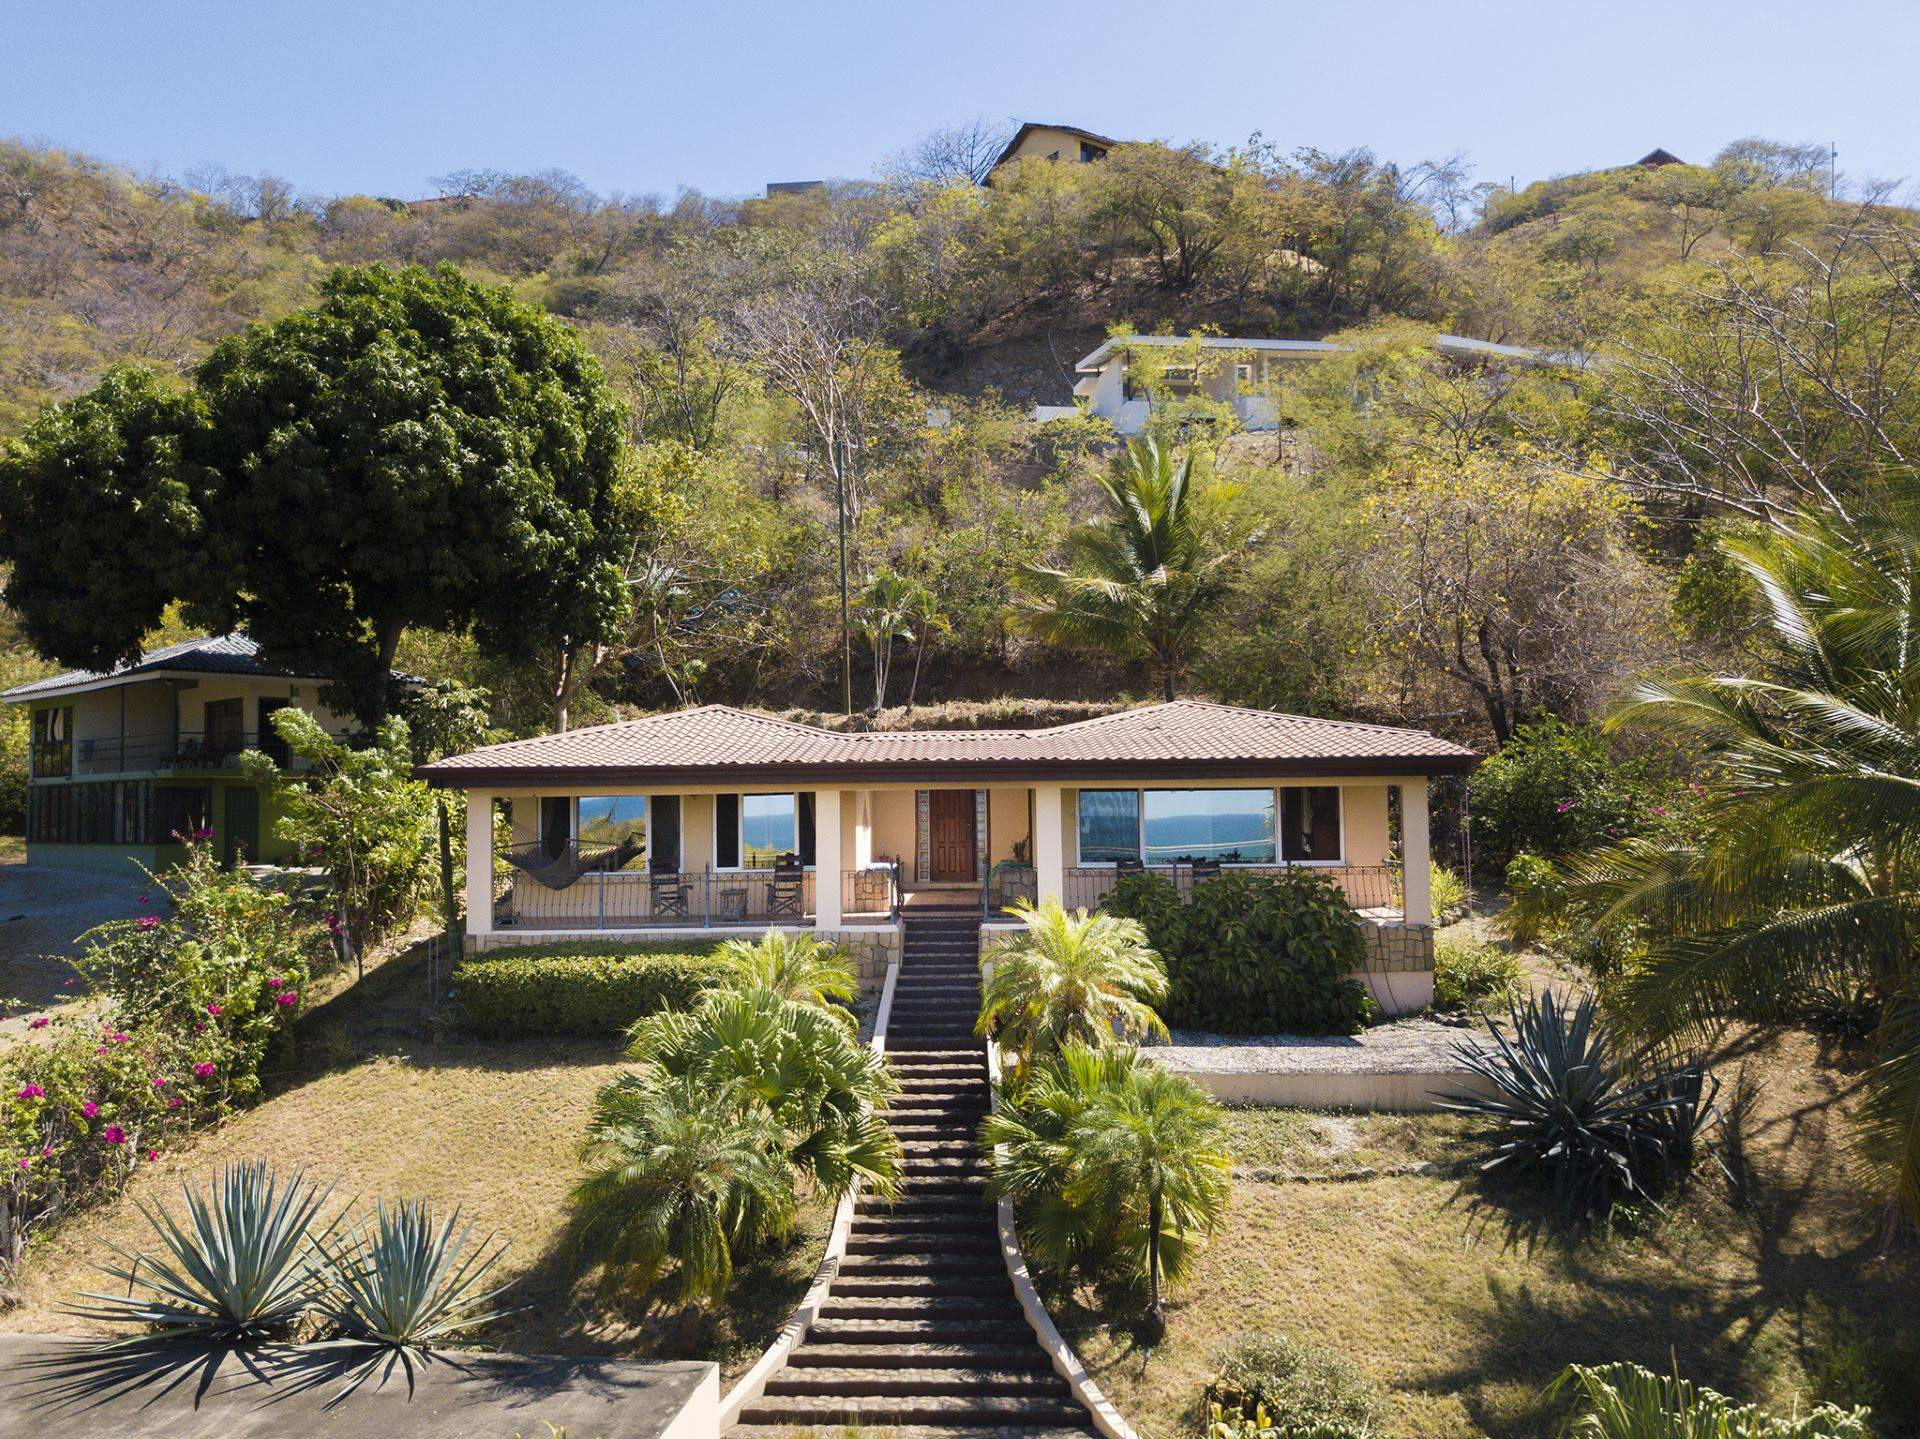 Casa Melocoton – Ocean View Home in Playa Prieta